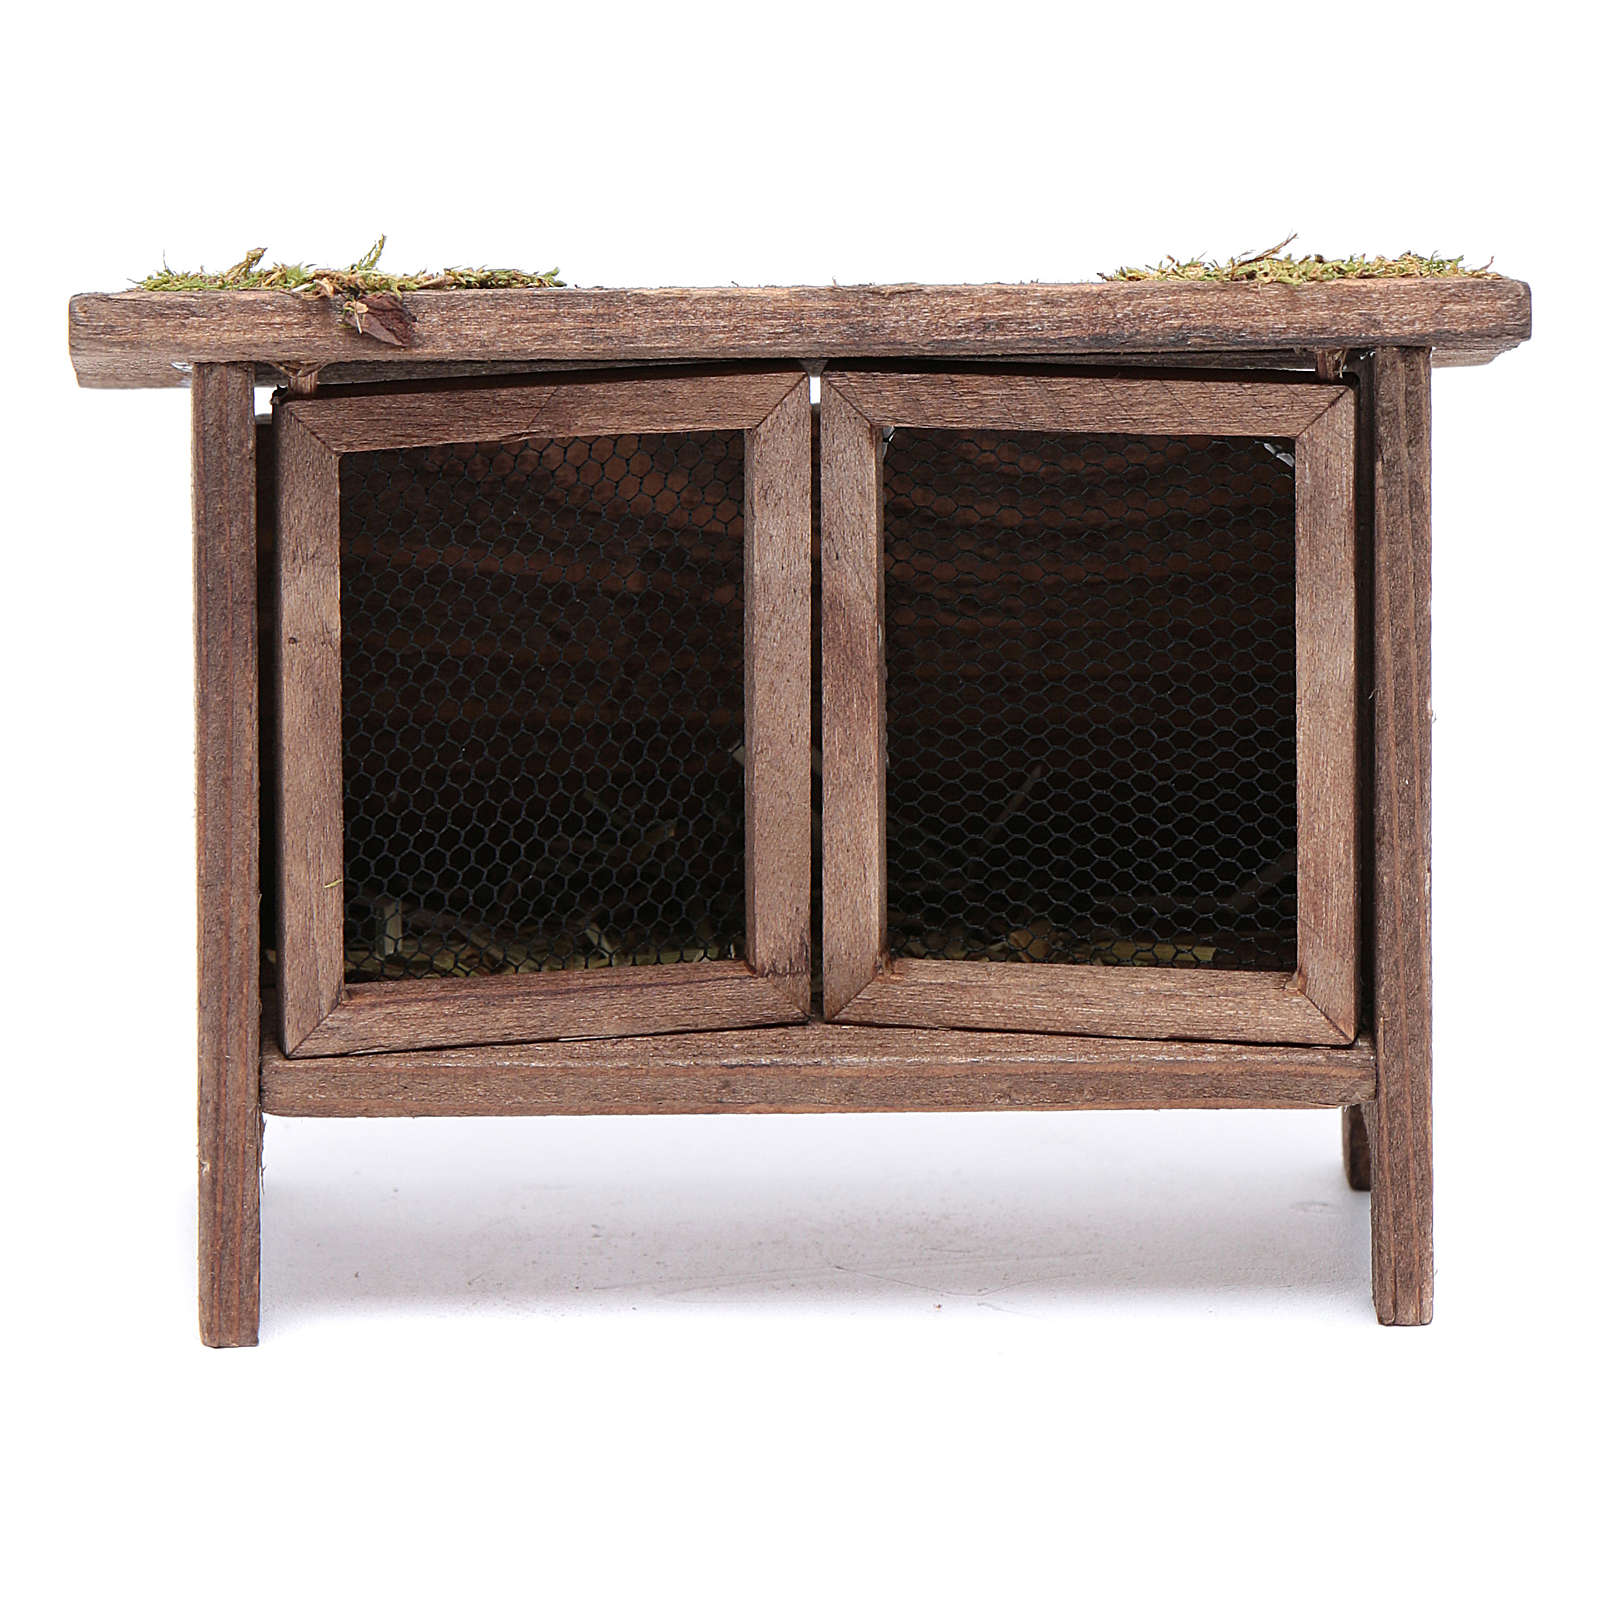 Rabbit hutch for manger scene 3